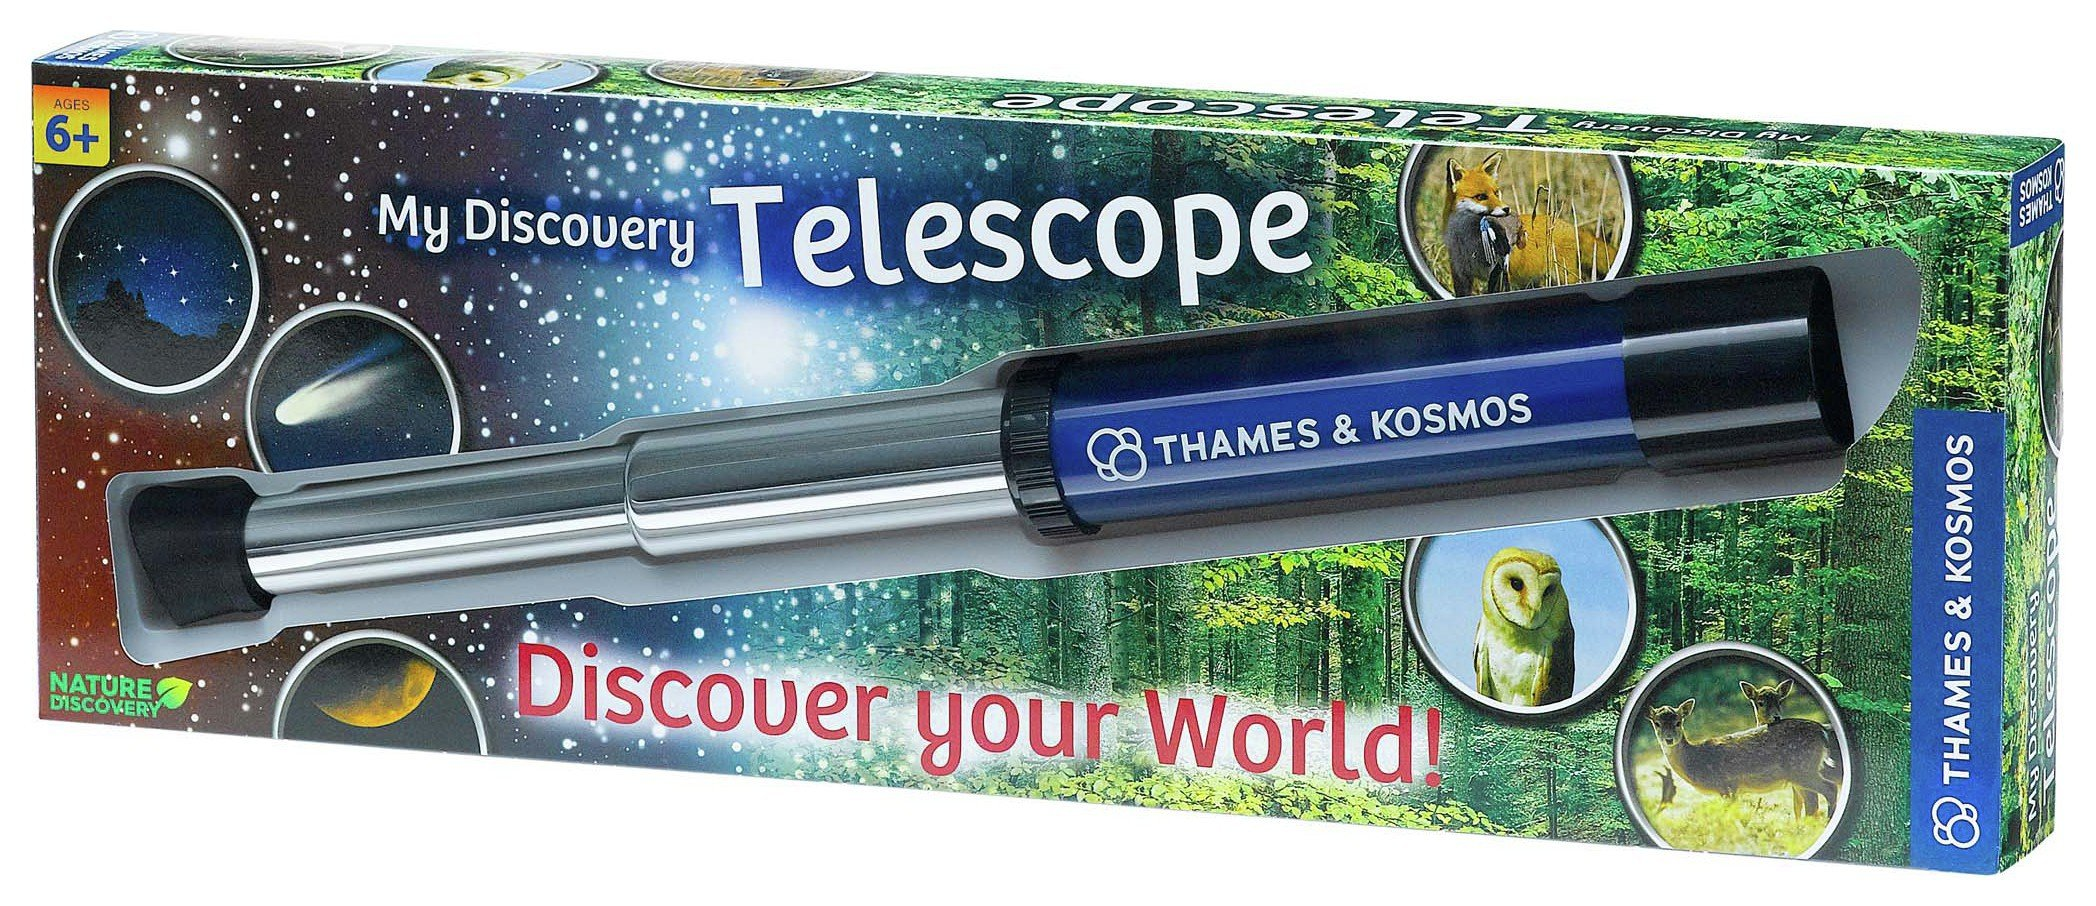 Thames and Kosmos My Discovery Telescope.